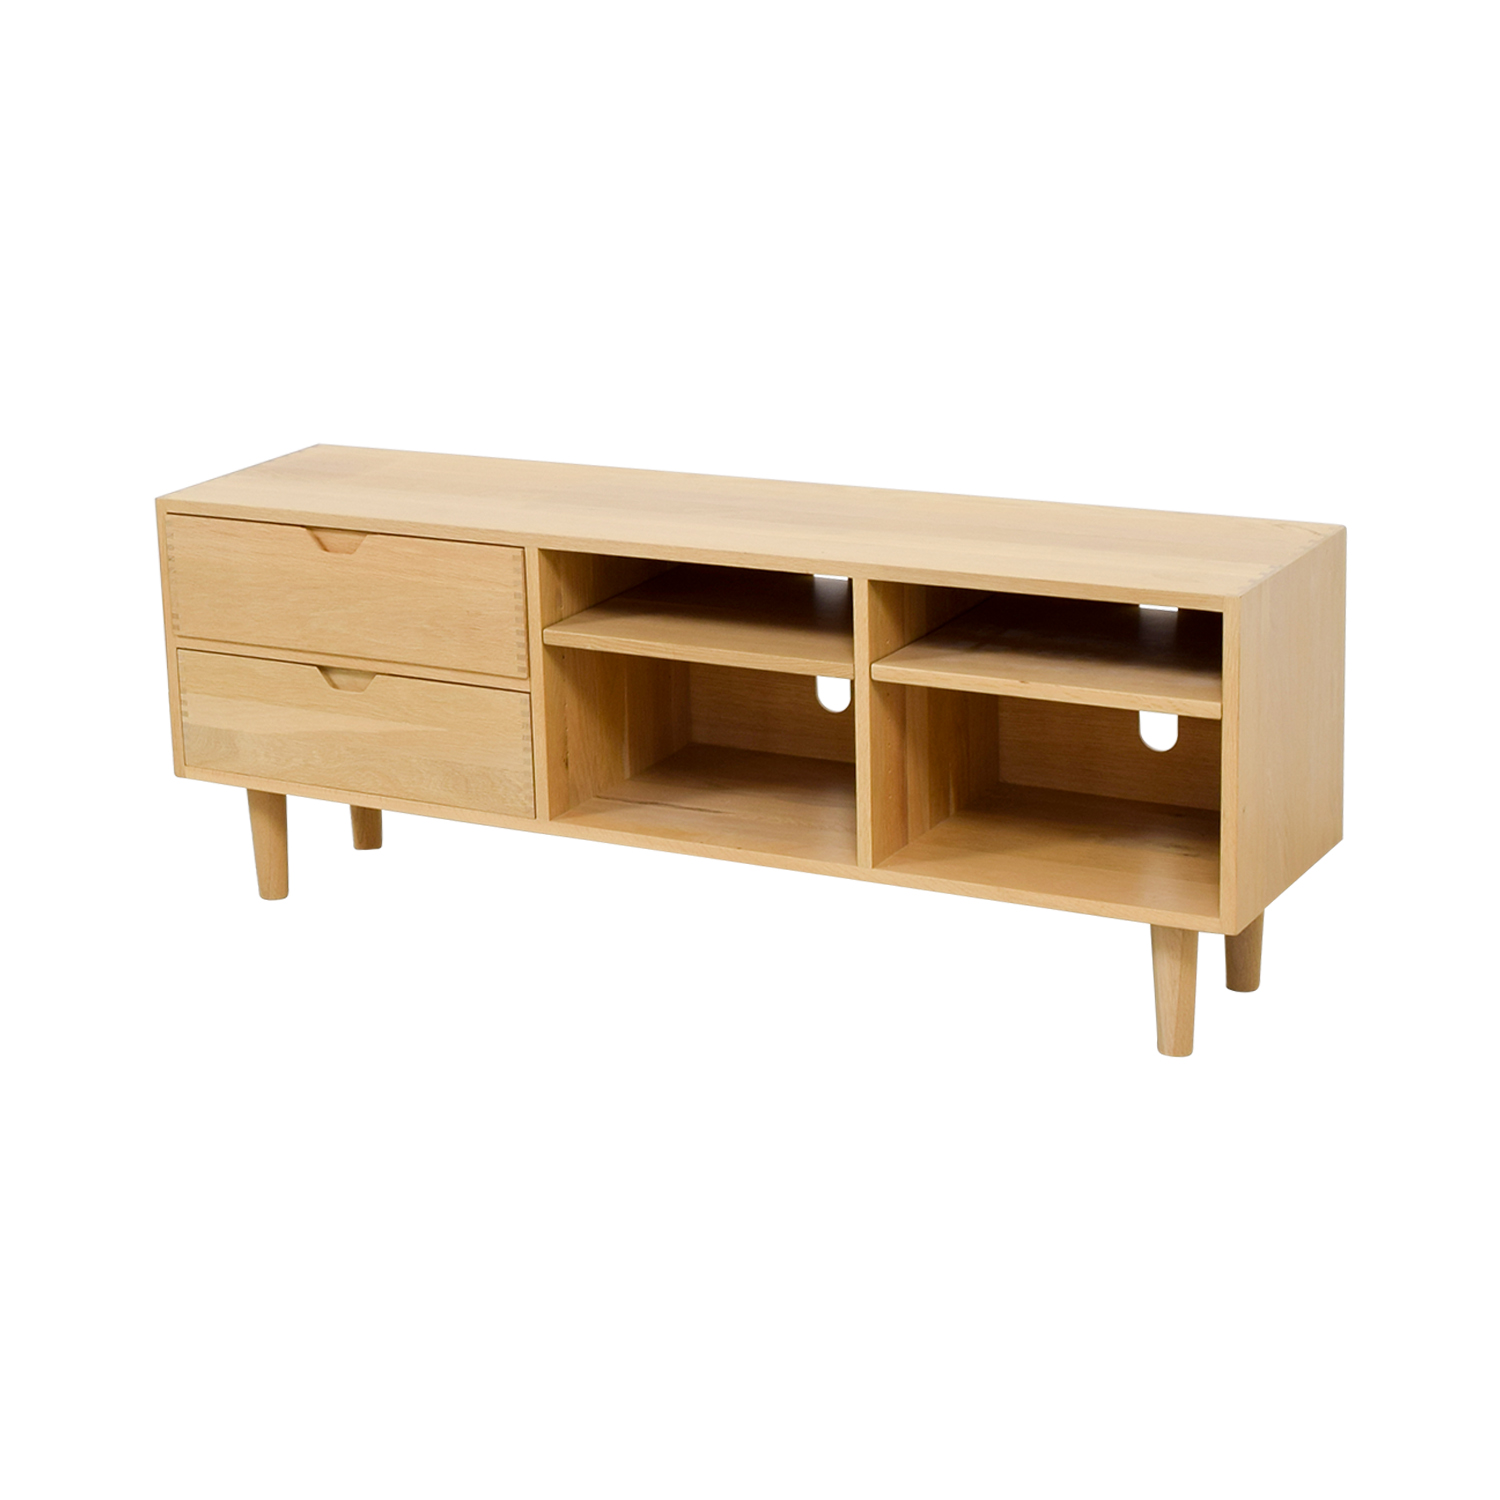 The Conran Shop for ABC Home The Conran Shop Media Console